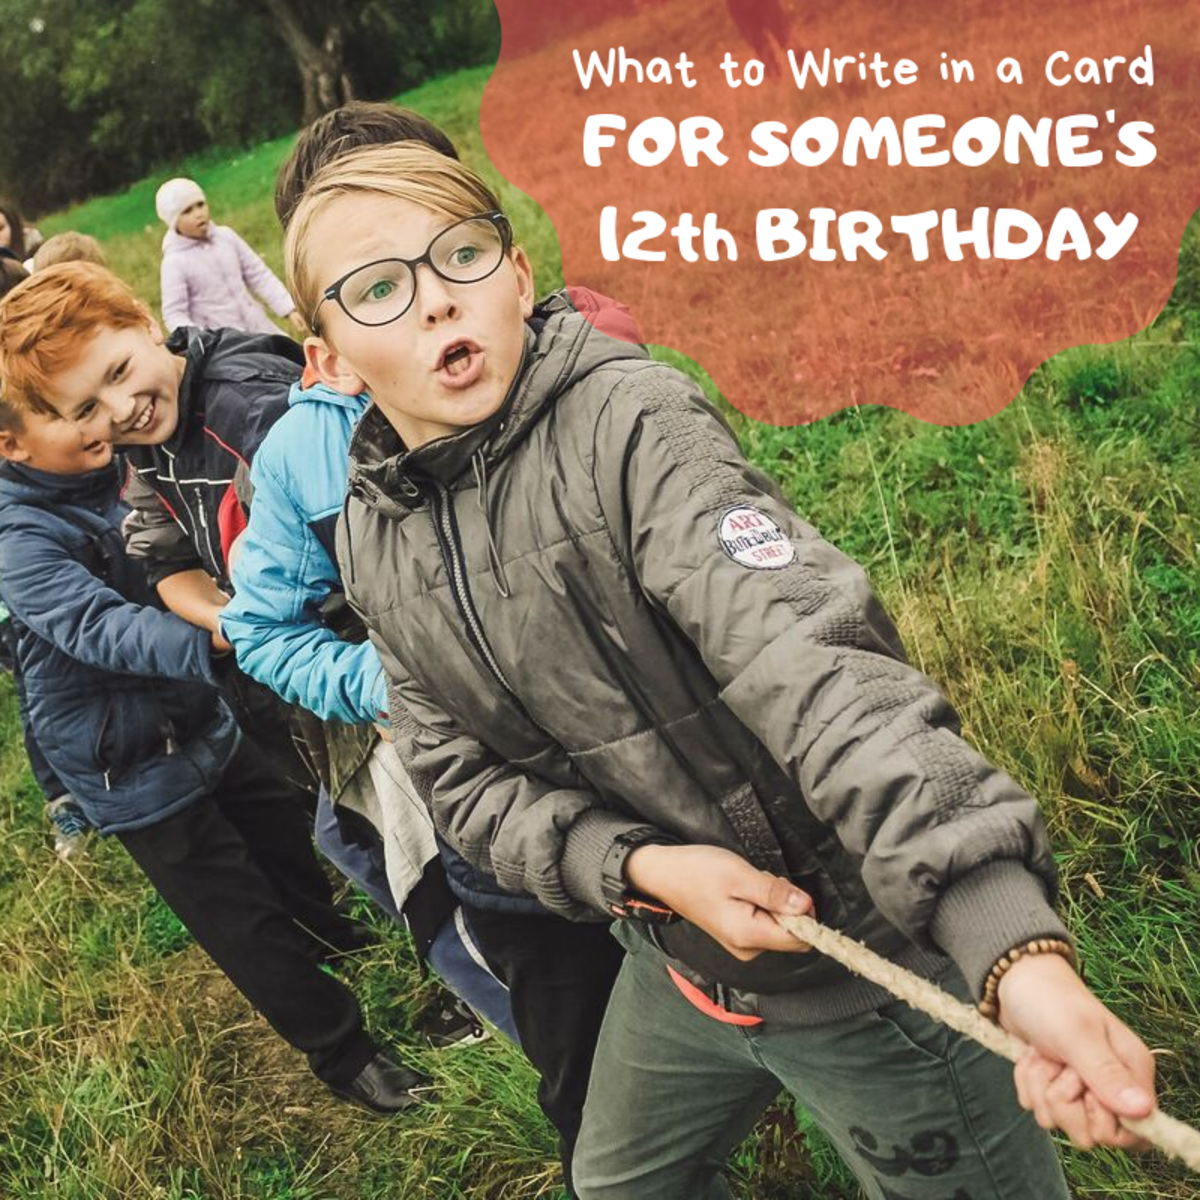 Wish the new 12-year-old in your life well with a funny or inspiring birthday message!